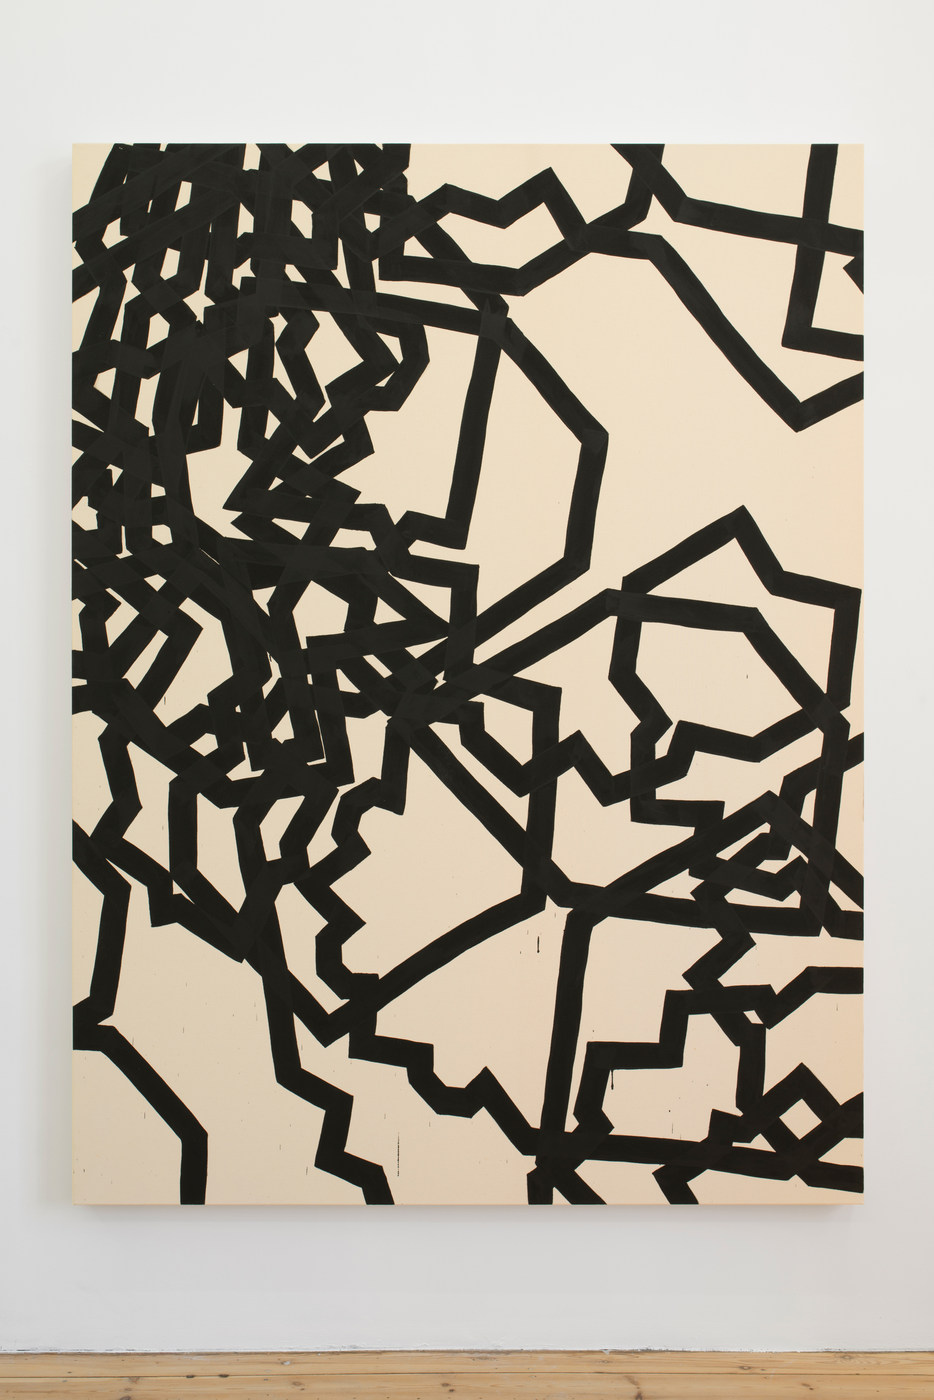 Latifa Echakhch, Dérives, 2015, Acrylic paint on canvas, 200 x 150 cm, unique